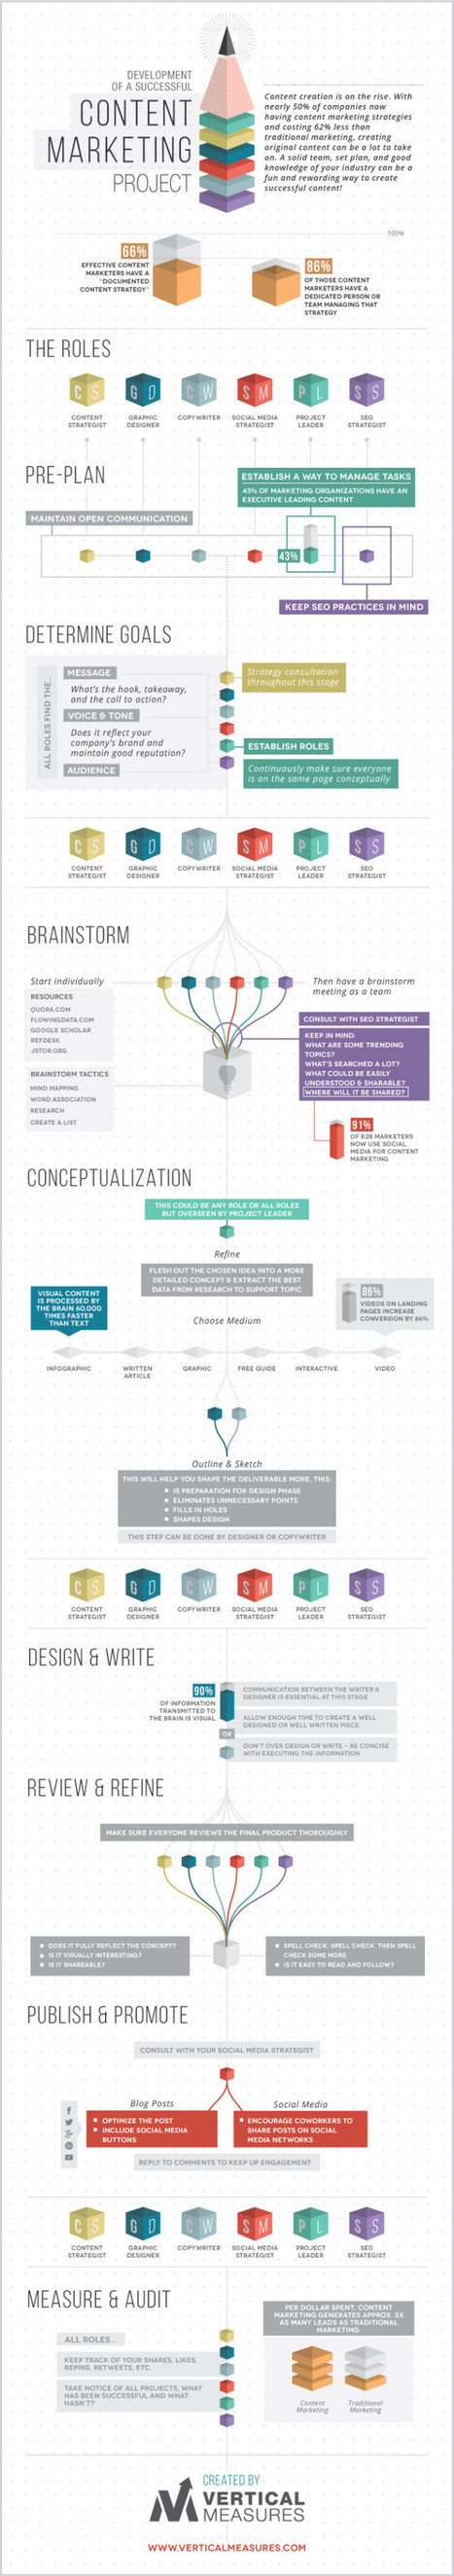 The 8 Step Approach to Successful Content Marketing #infographic | MarketingHits | Scoop.it